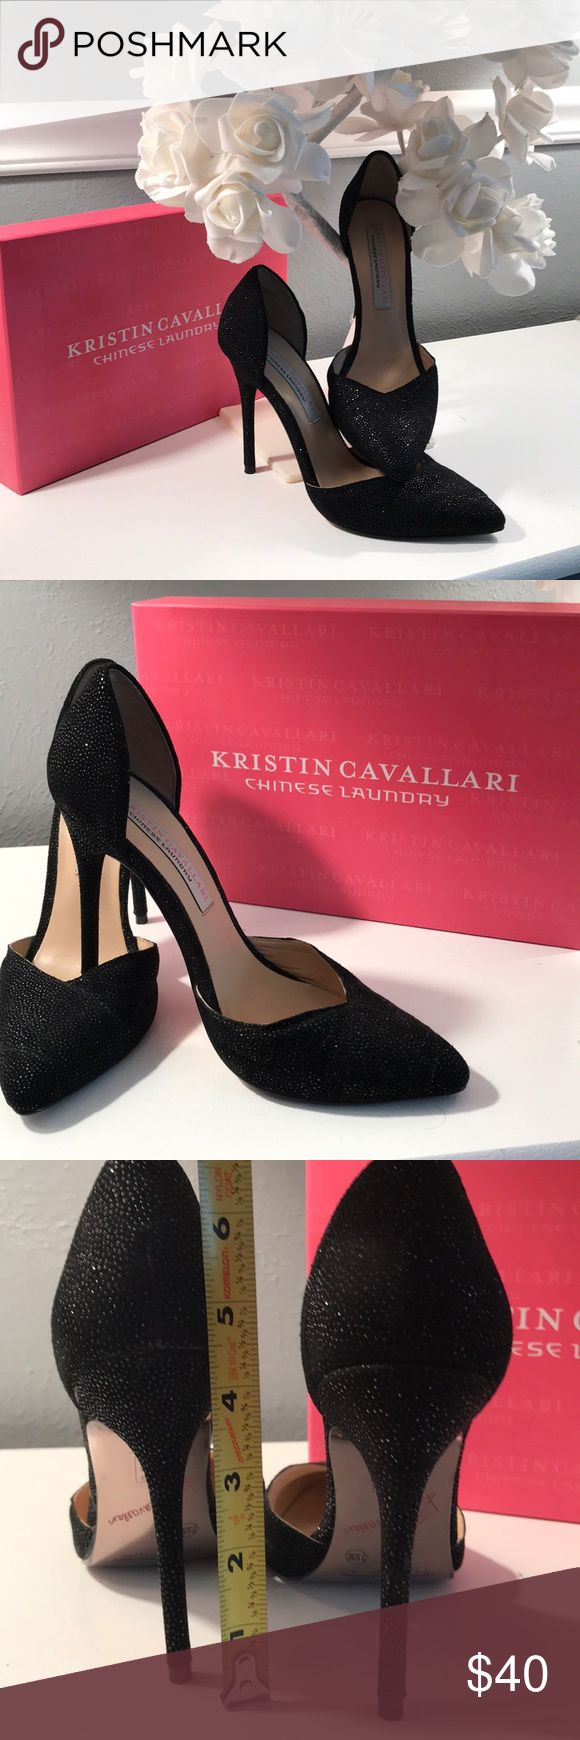 """Chinese Laundry - Kristin Cavallari Black Pumps Beautiful black pumps by Kristin Cavallari for Chinese Laundry. Worn only once so in excellent condition. Suede upper and 4.5"""" heel. Slight glimmer in the suede. Awesome looking shoe. Box included. Comes from a smoke and pet free home. Chinese Laundry Shoes"""